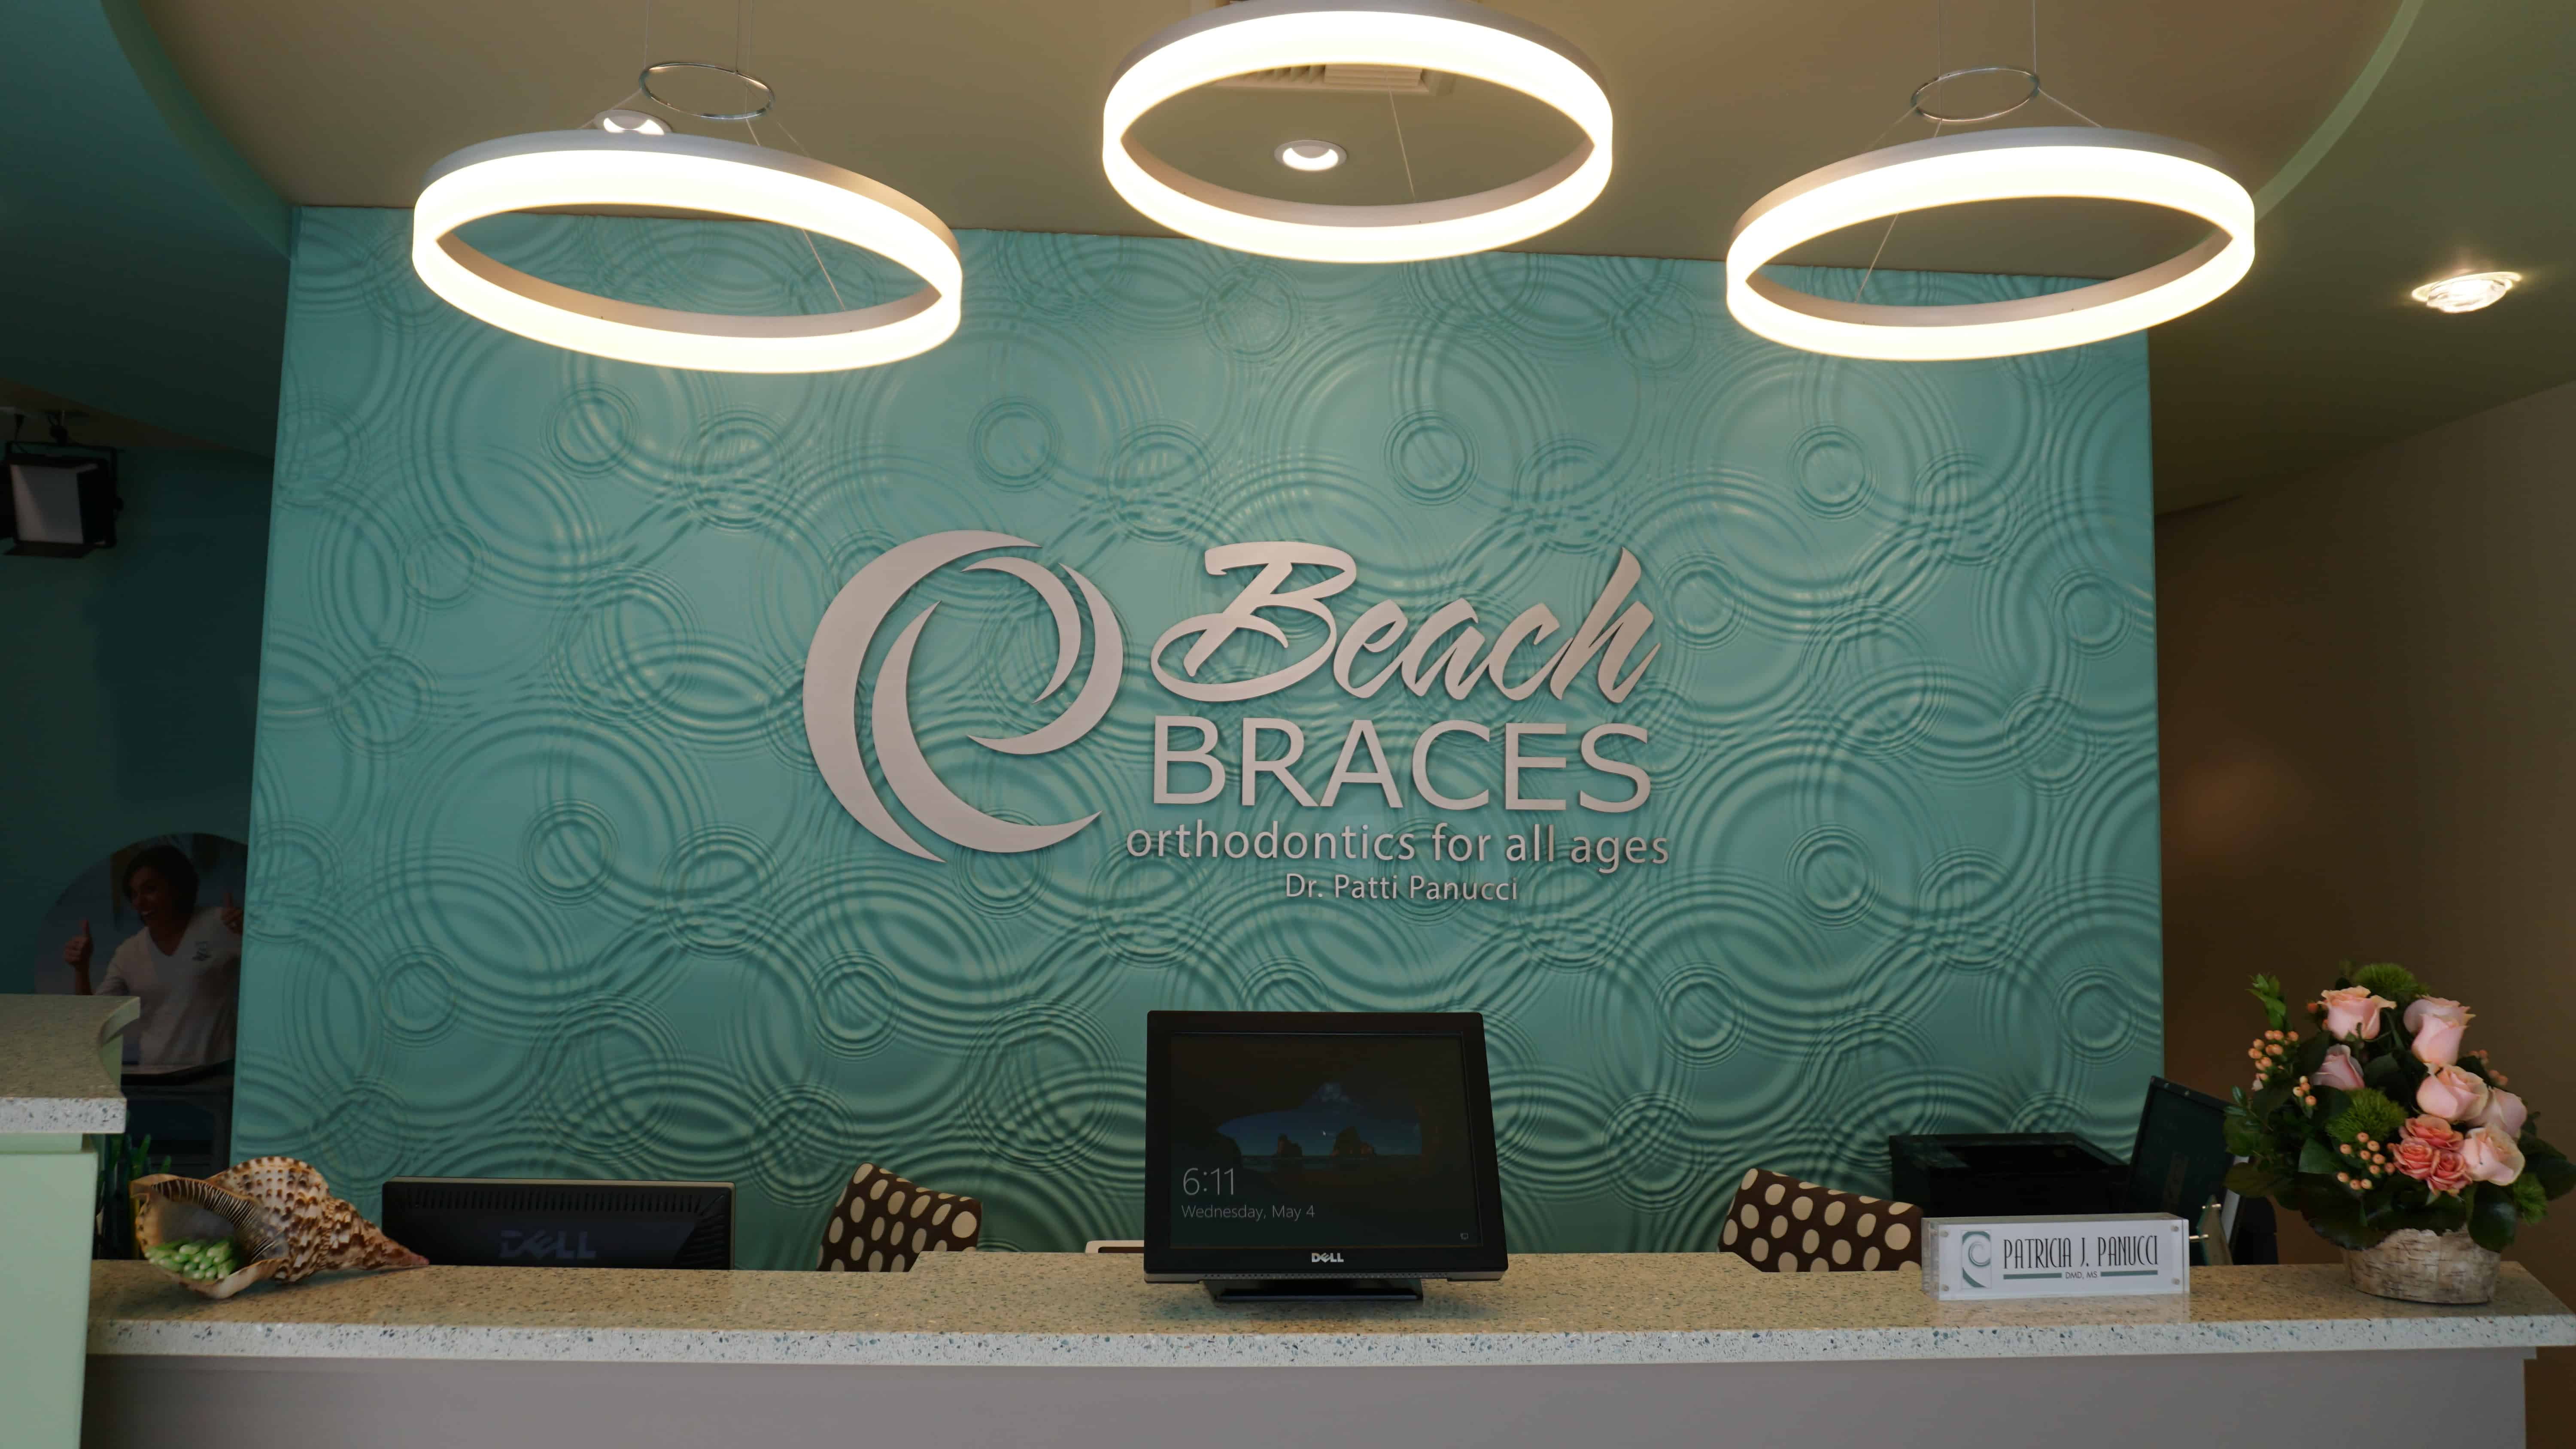 Beach Braces reception area